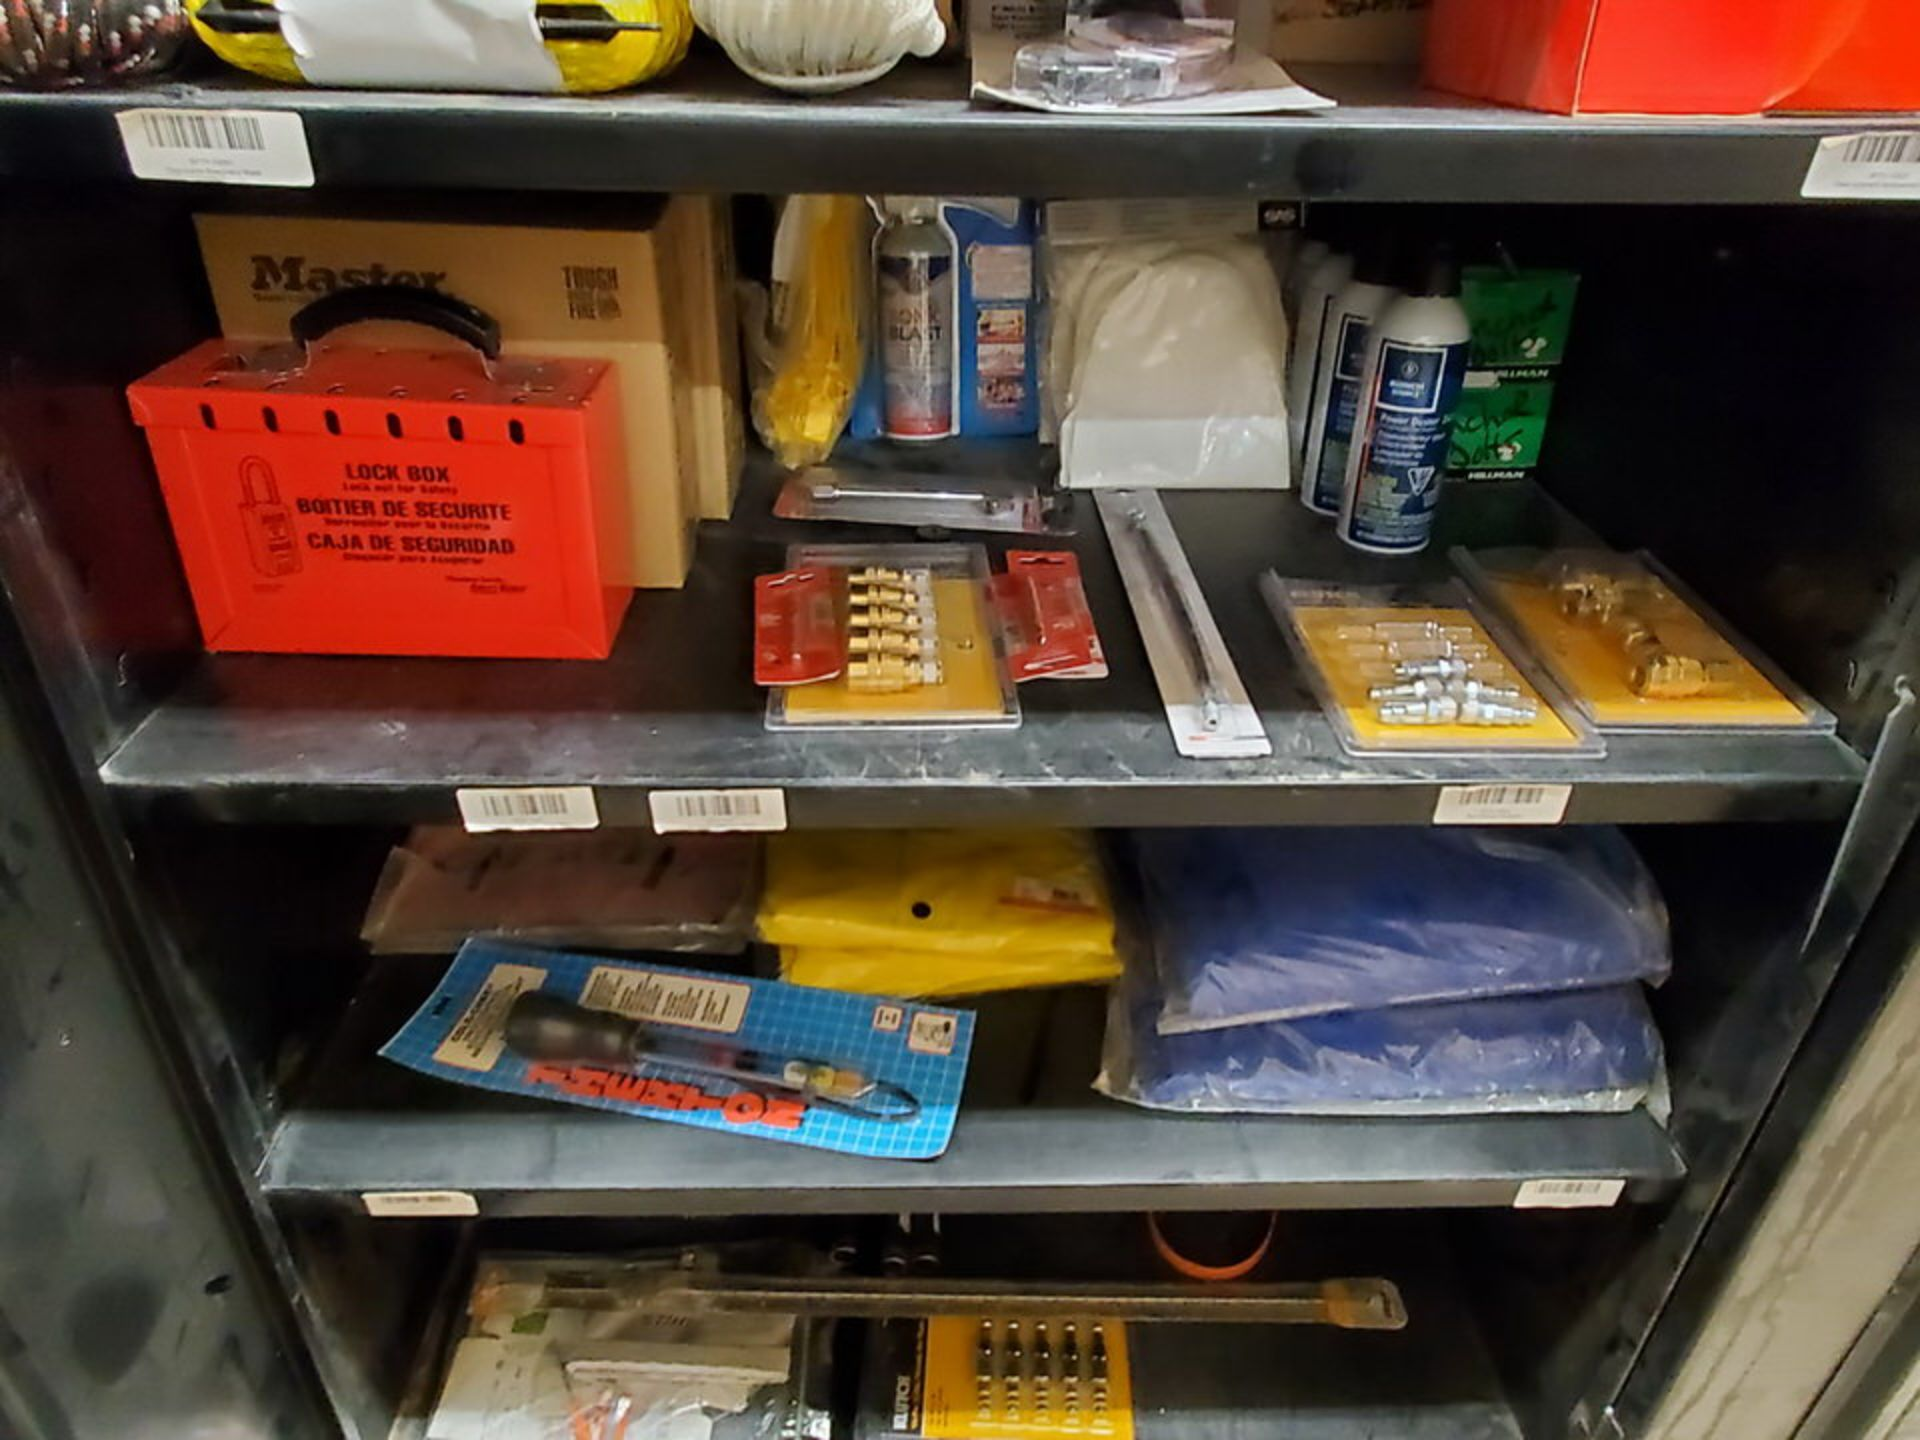 Metal Storage Locker To Include But Not Limited To: First Aid Refill Kits, Assorted Fittings, - Image 4 of 13